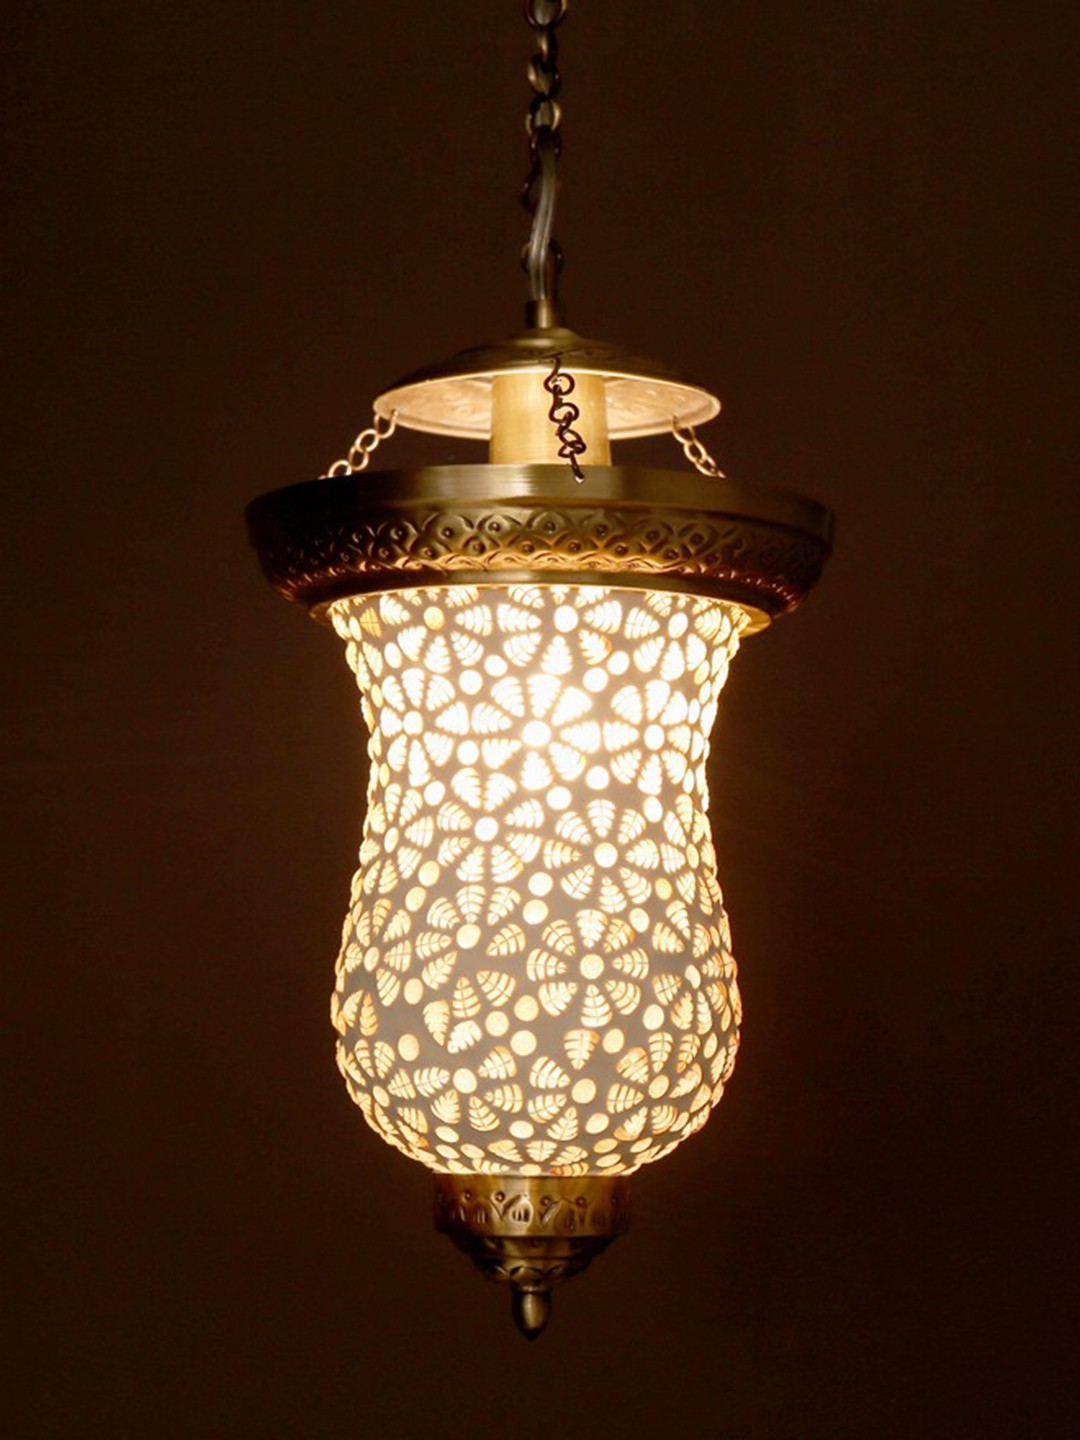 Captivating Ceiling Hanging Light